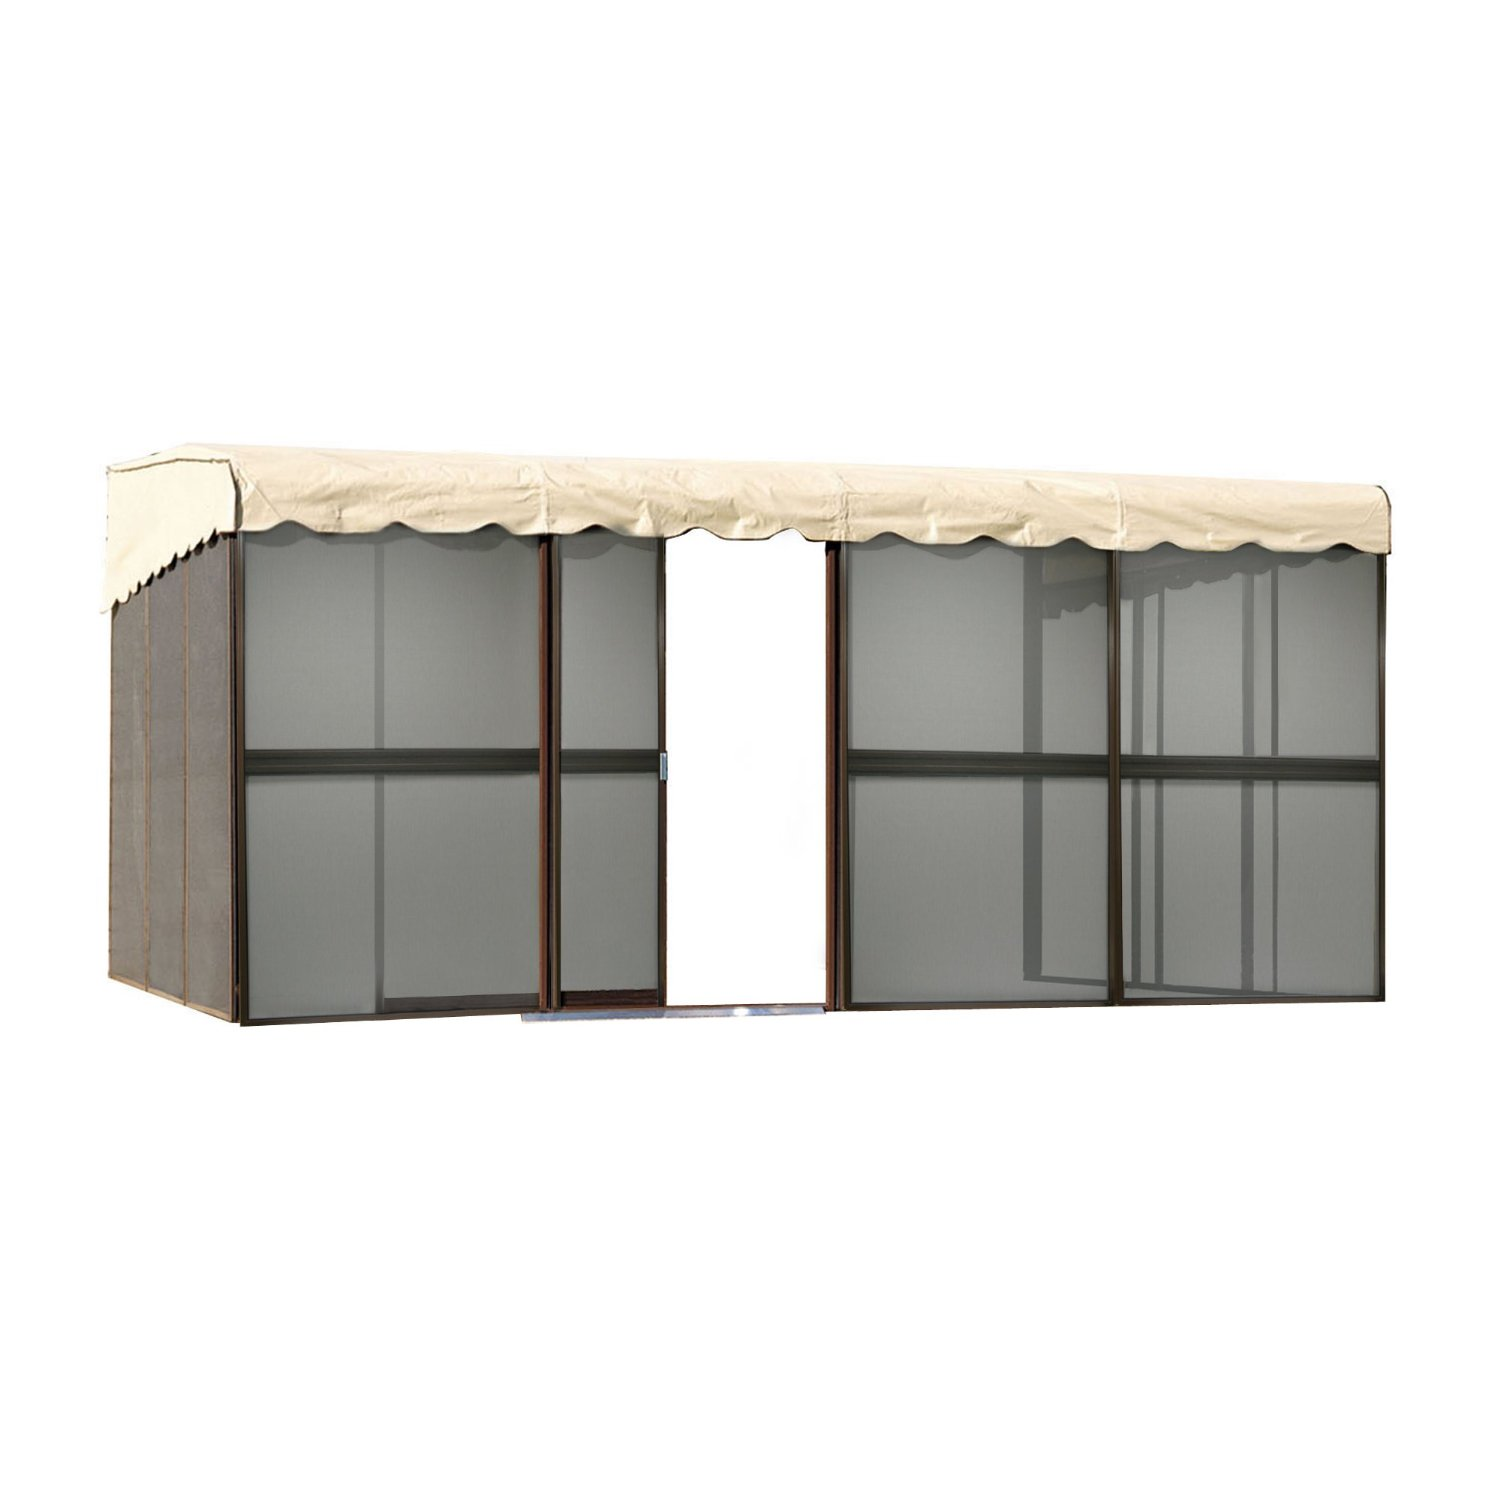 Patio Mate 10-Panel Screen Enclosure 09165, Brown with Almond Roof